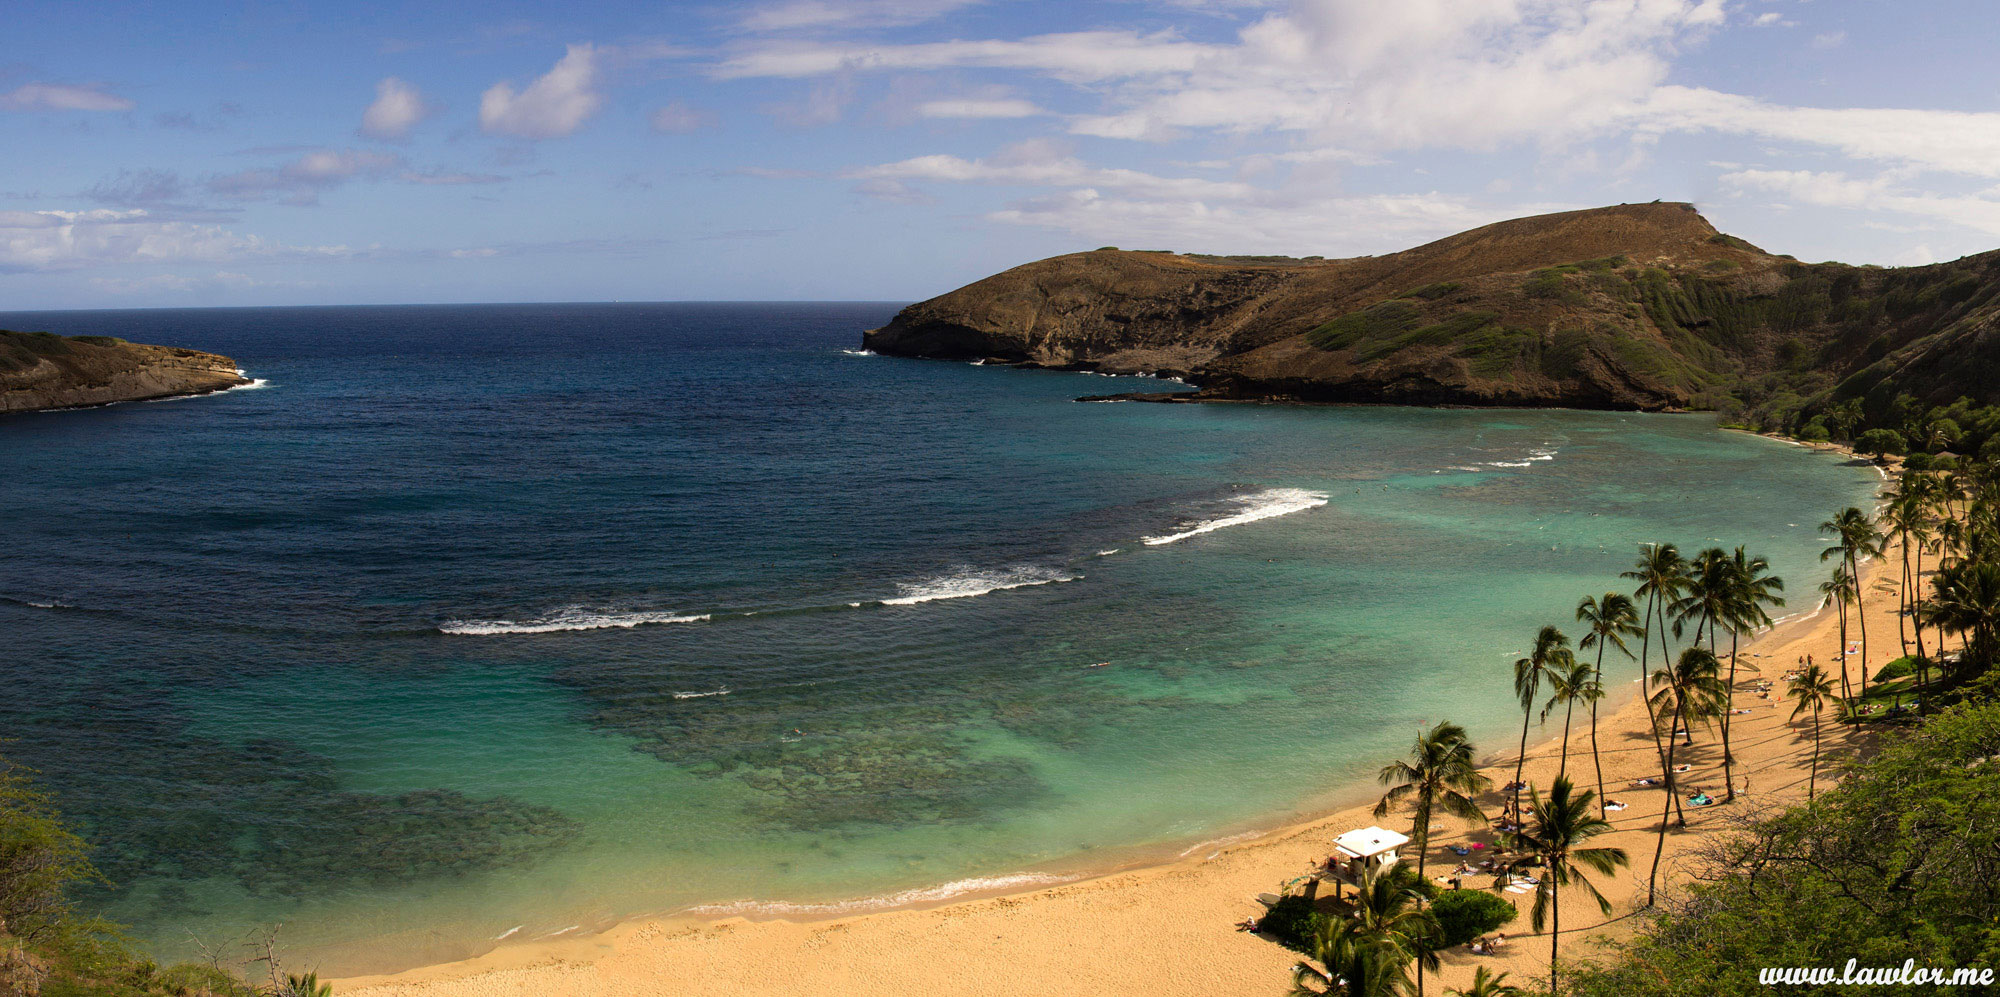 hanauma bay, oahu – hawaii - free landscape photography, free